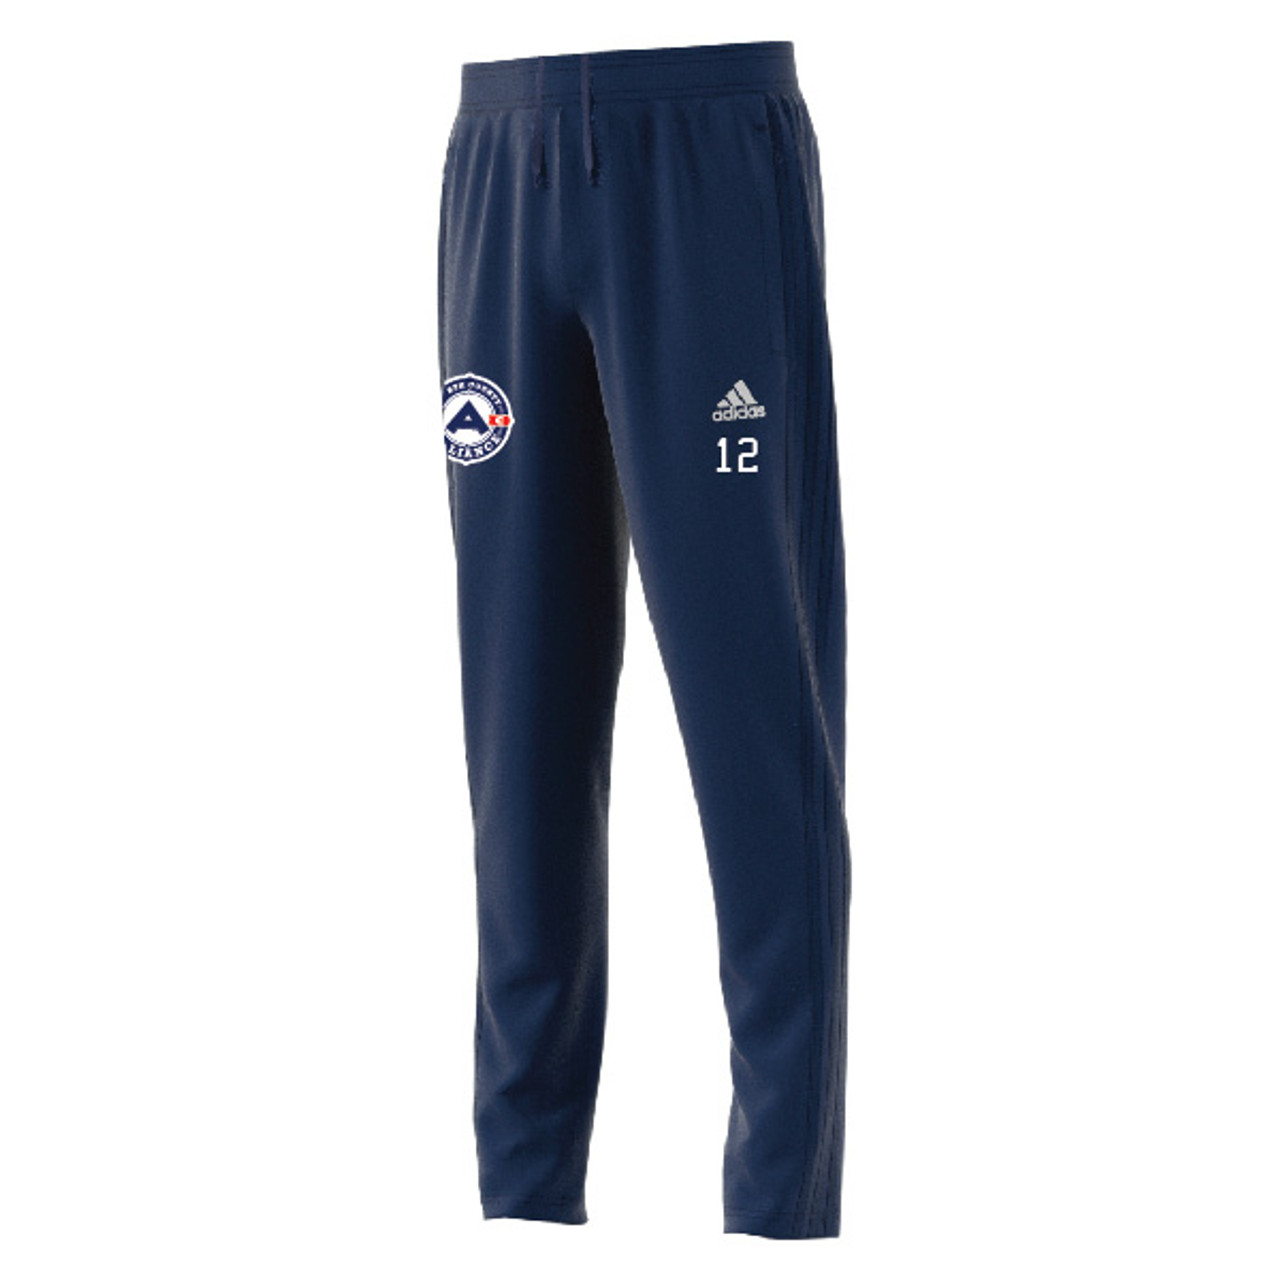 best service 7abe1 cf9af adidas Condivo 18 Training Pants (NCA) - Soccer City